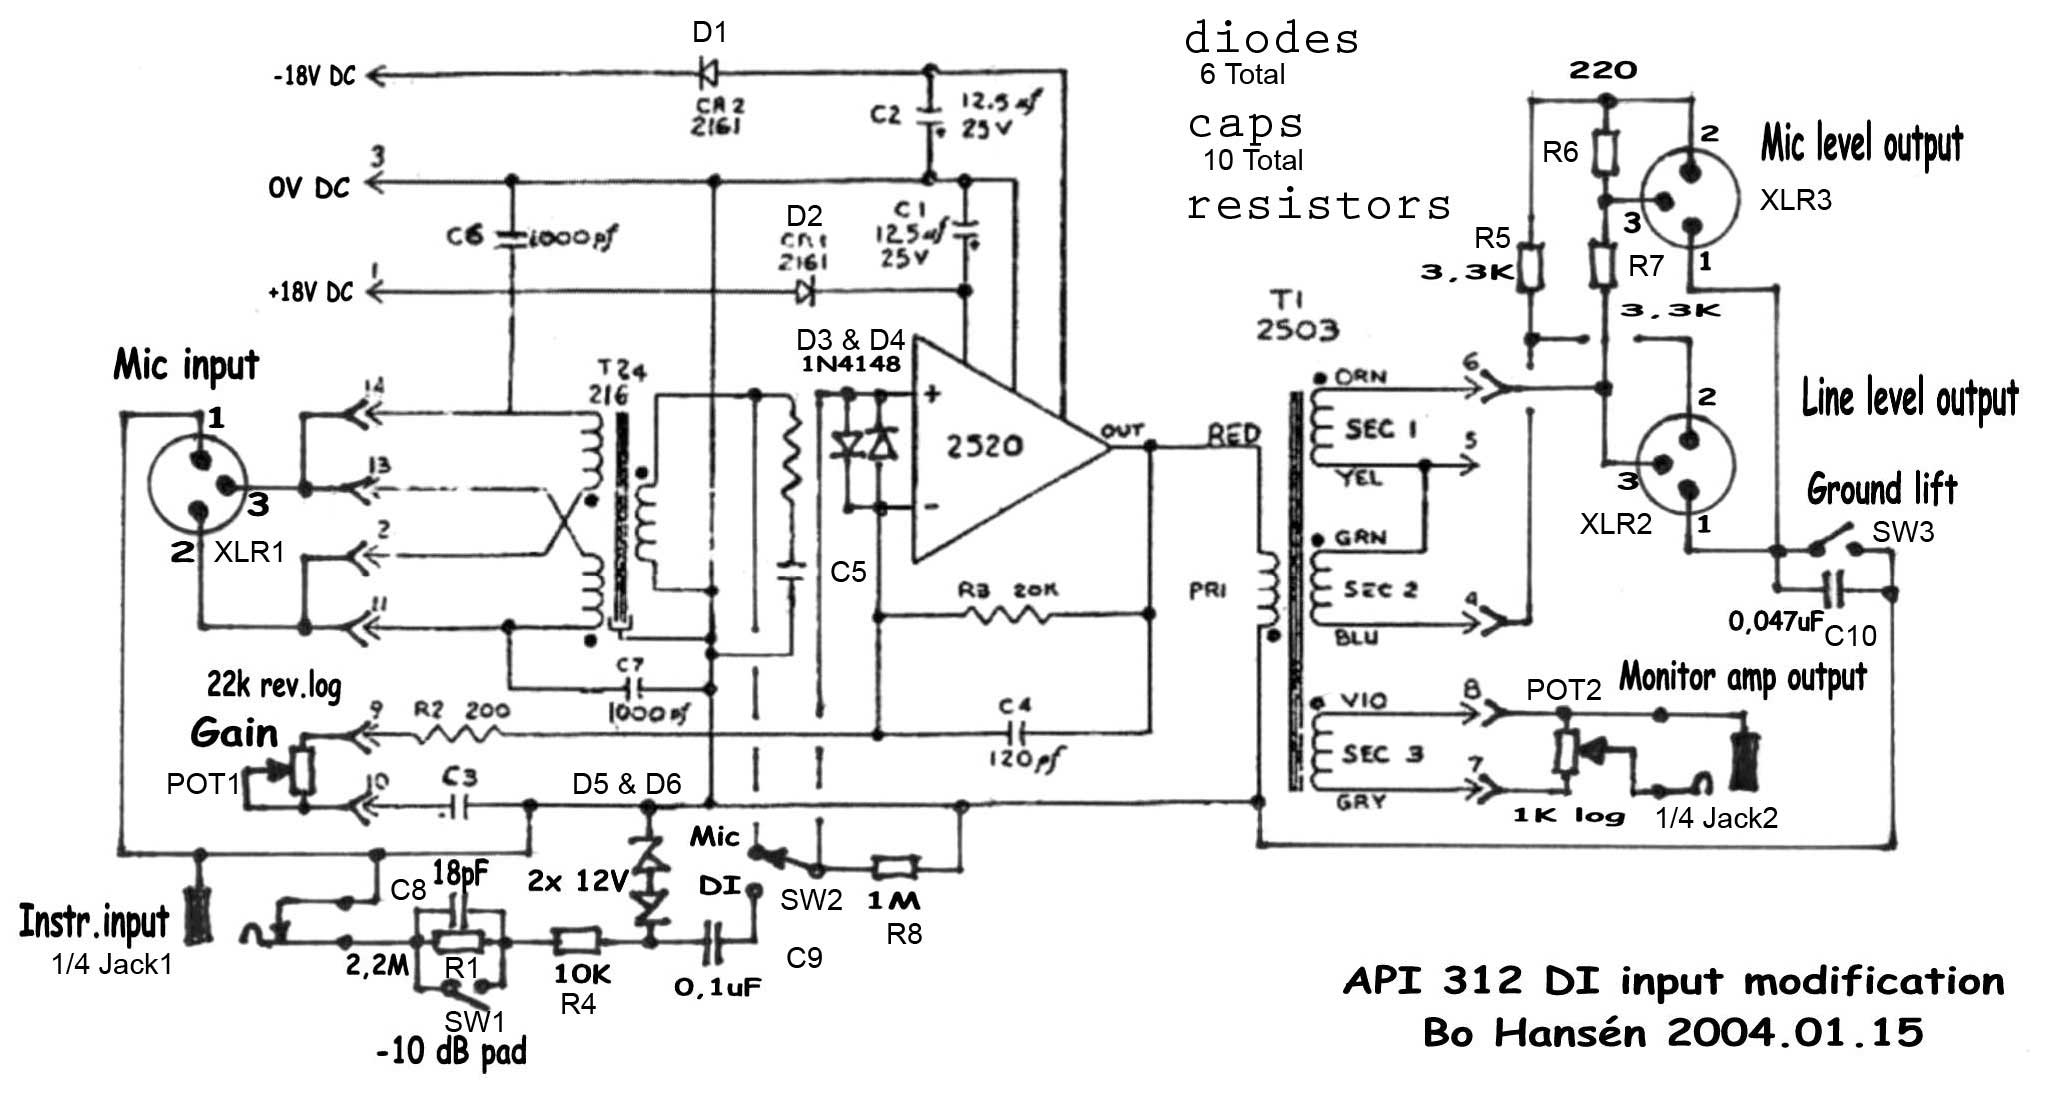 Someone Please Take A Look At This Board Schematic